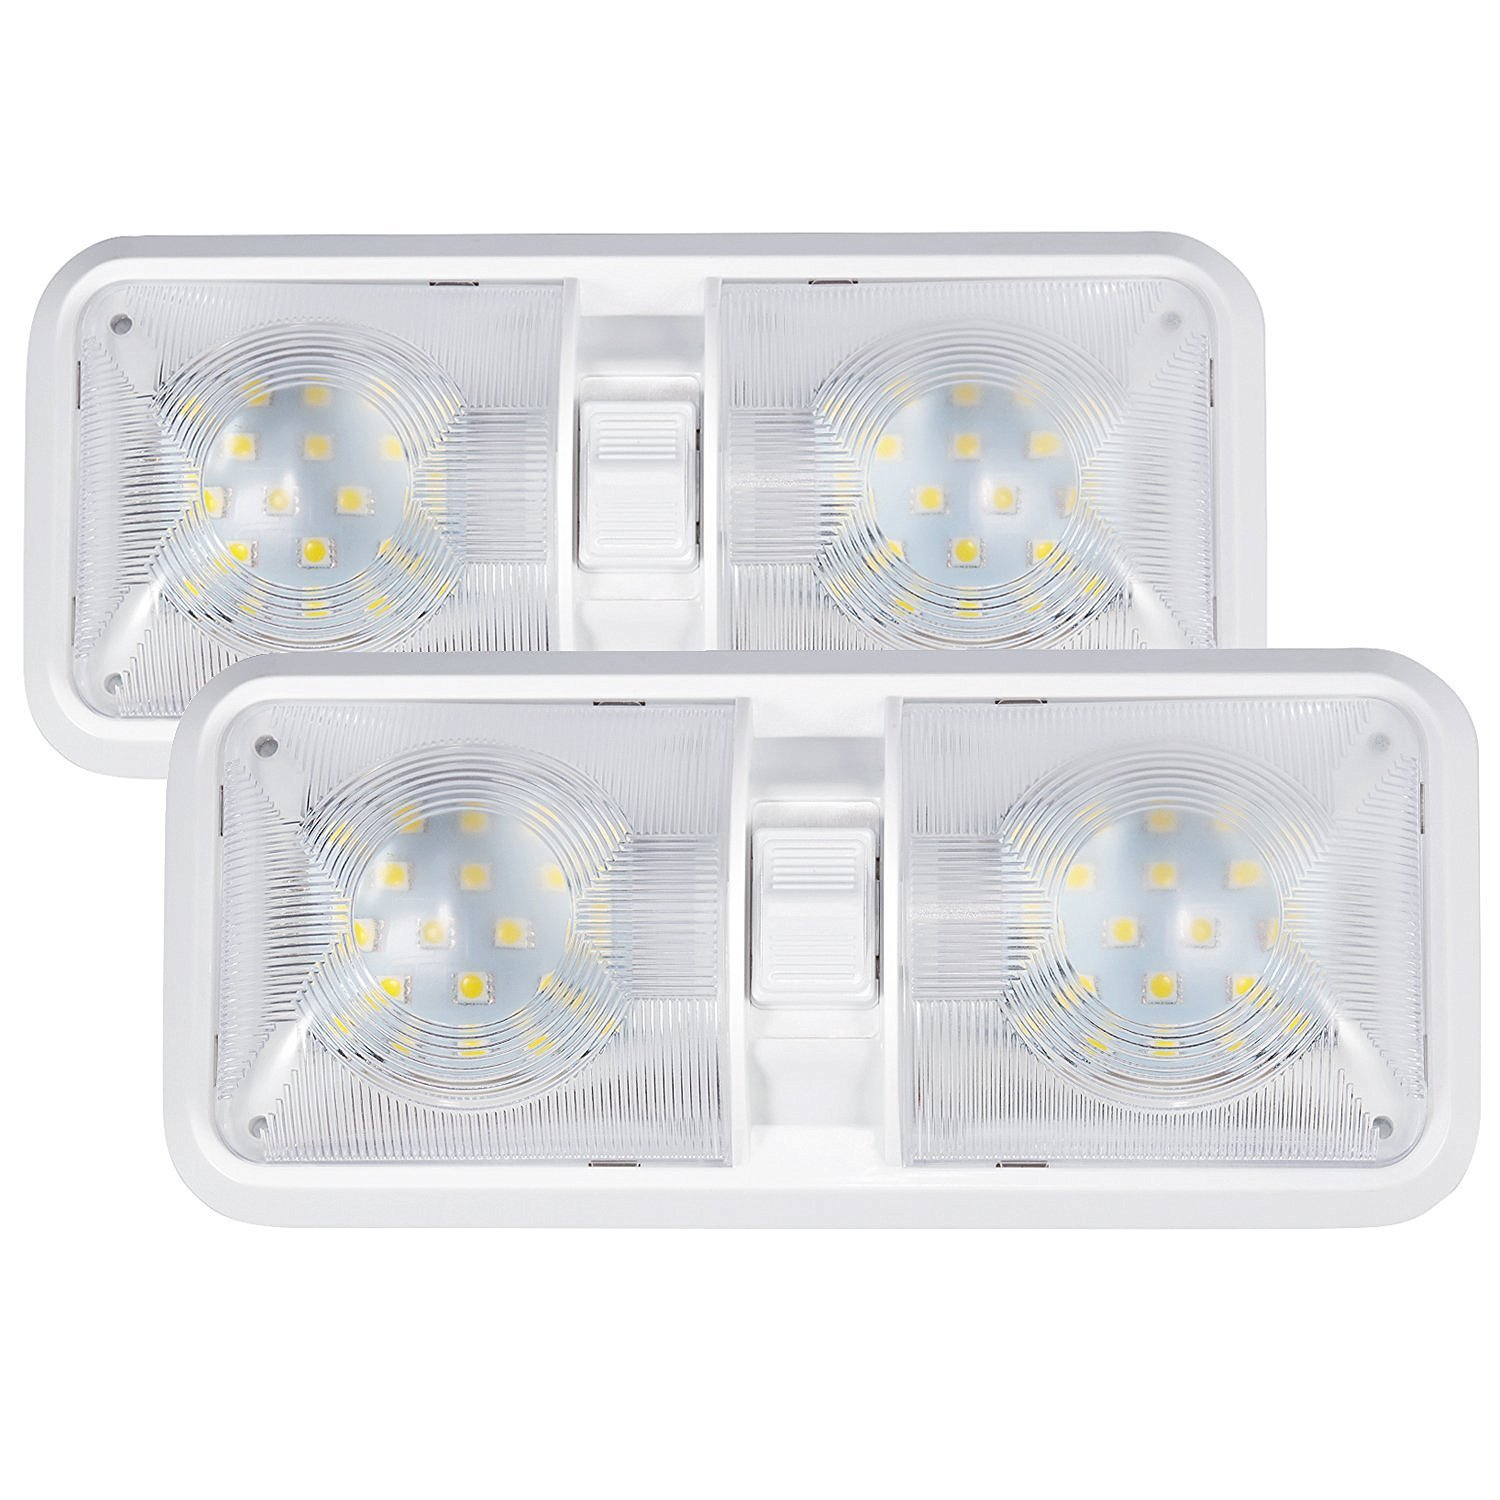 Kohree 2 Pack 12V Led RV Ceiling Dome Light Bulbs RV Interior Lighting for Trailer Camper with Switch White